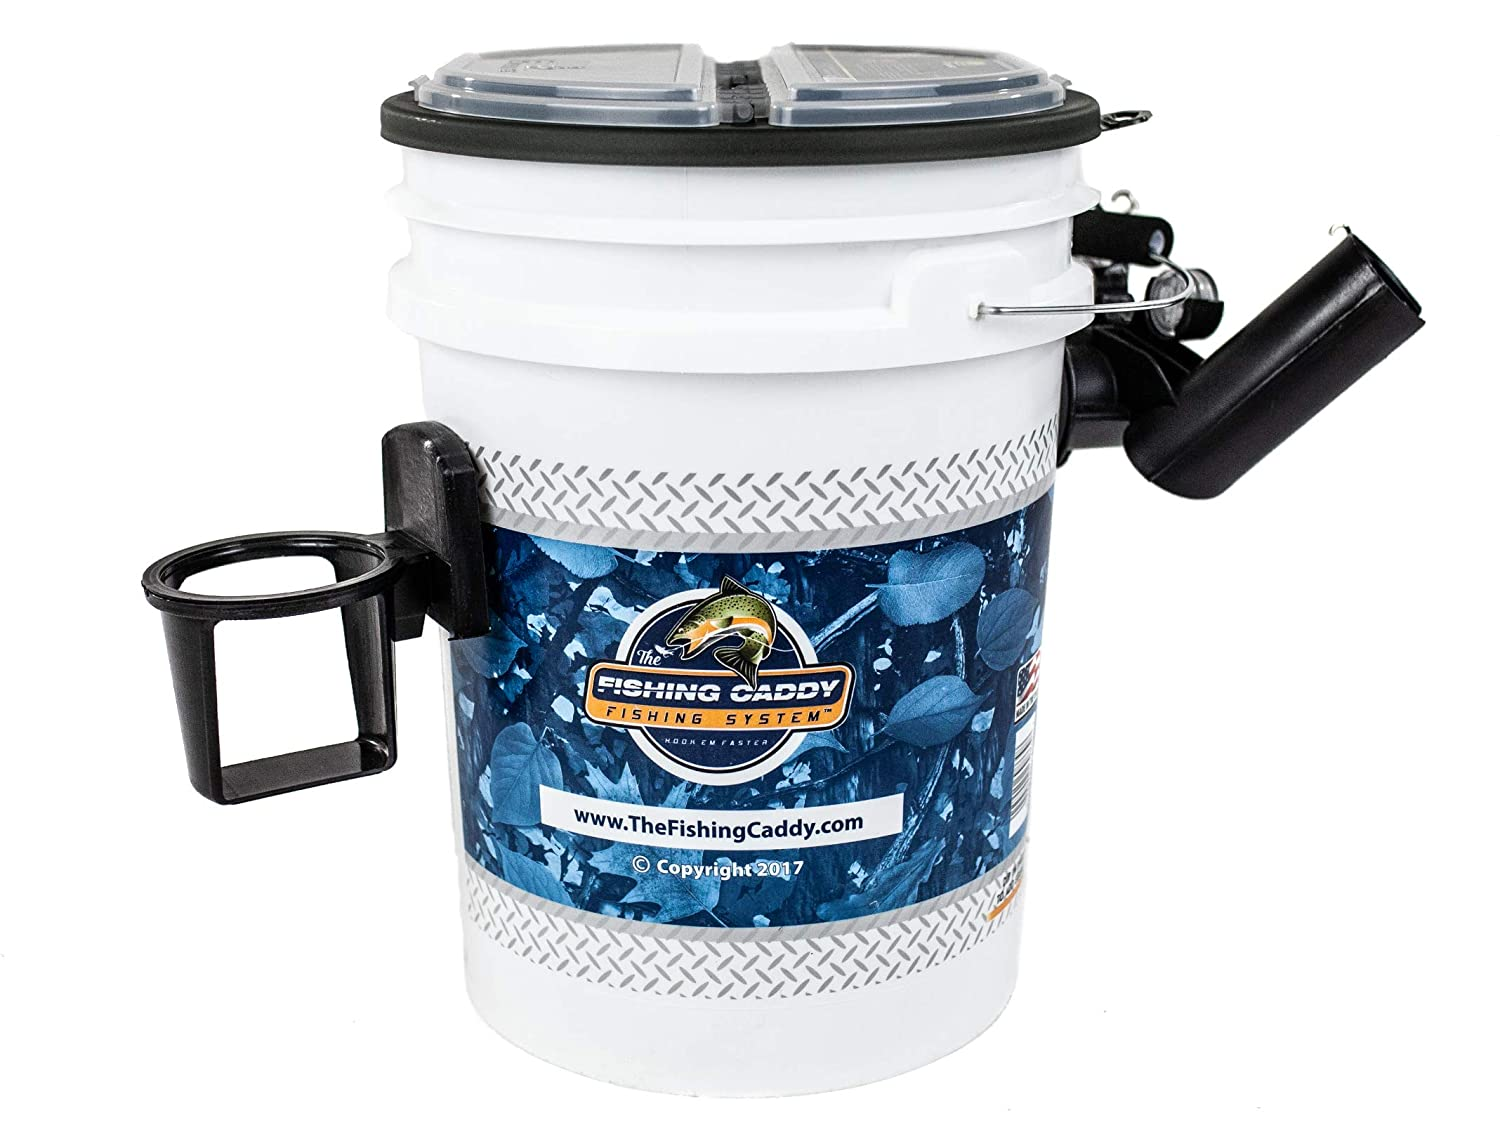 The Fishing Caddy Fishing Bucket Storage or Bait Holder w Tackle Box Lid, Dual Fishing Rod Holder, Cup Holder or Beer Holder LED Waterproof Light for Night Fishing Fisherman Gift